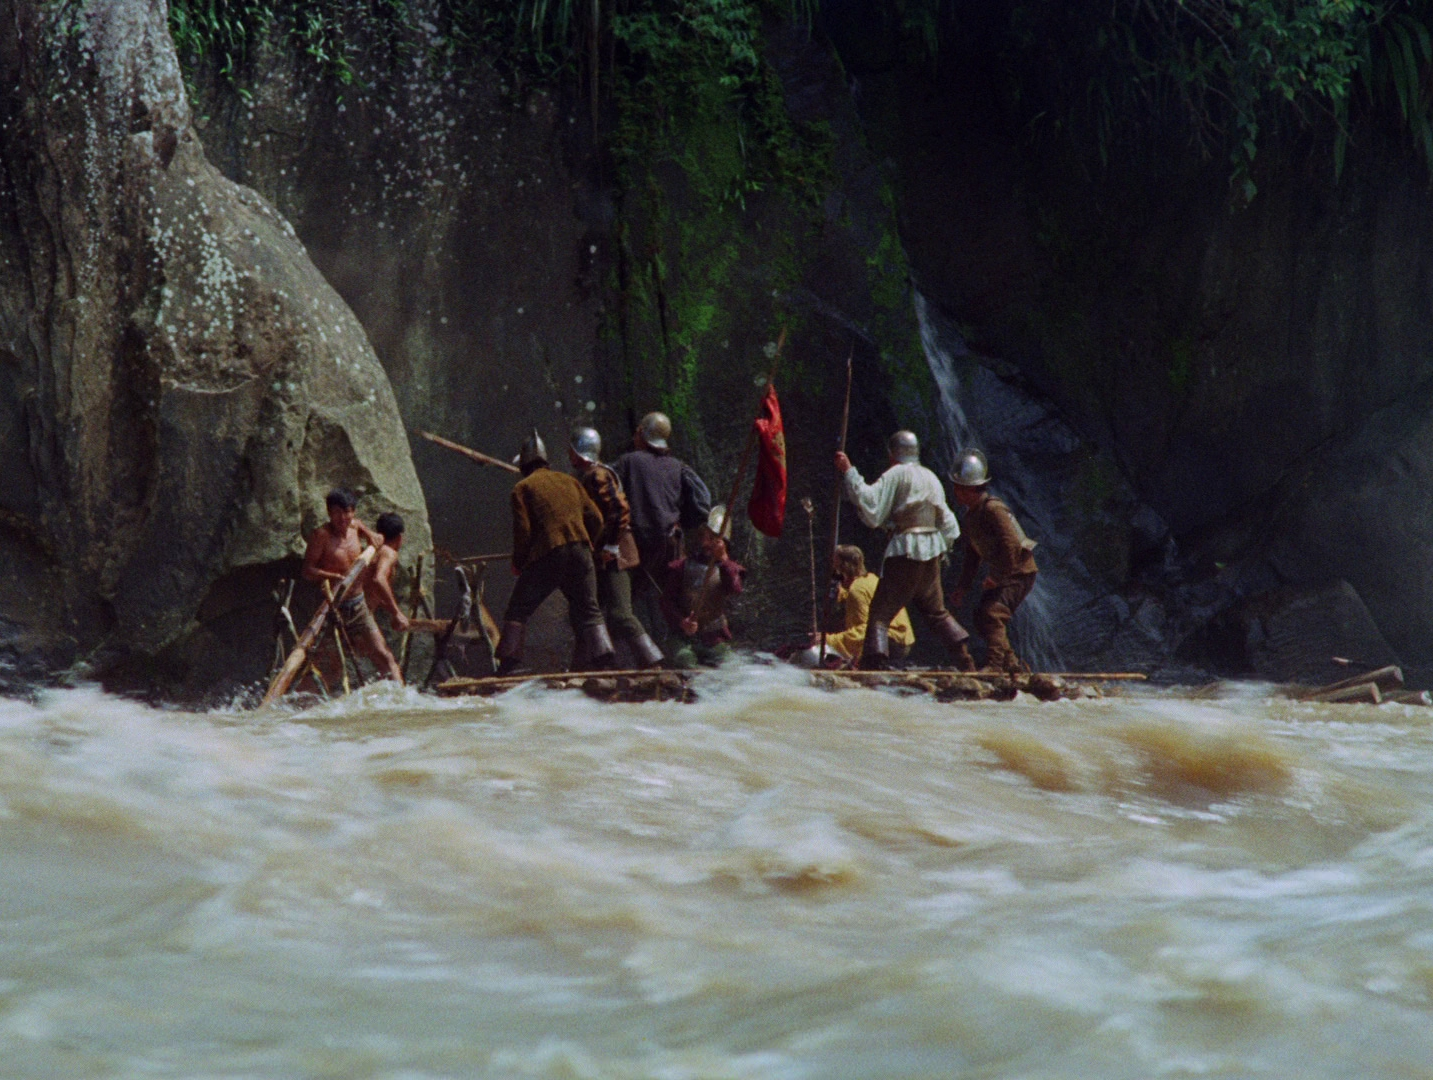 Werner Herzog (1972)  Aguirre, the Wrath of God. Film still.    As a child, I remember heading down to the river at the end of the garden with my father. He said that they were making something on the other side of the river and that we should go and have a look. From my memory I can see a cottage with its roof on fire. There are lots of people standing around it watching it burn and for some reason there are lots of big lights, which as a child I thought was the strangest thing as it was the middle of the day.  The odd goings-on are in fact a film being made in Ardmore Studios which was on the other side of the river. I think it was a low budget Hammer House, some early 70s rip-off of the Frankenstein story (I was told this much later). Ever since then, I have always had a strong pull to go and see what was on the other side of the river.     Films, books and a song about rivers     Deliverance ,  1972, directed by John Boorman.    Aguirre, the Wrath of God  , 1972, directed by Werner Herzog.   Hu ckleberry Finn and his friends  . 1979, Canadian and West German TV series.    River's Edge ,  1987, directed by Tim Hunter.    Deadman  , 1995,directed by Jim Jarmusch.    To the Waters and the Wild ,  1974-94, filmed, written and produced by Gerrit van Gelderen, RTÉ series.   Heart of Darkness,  1899,   Joseph Conrad.   Wind in the Willows,  1908, Kenneth Grahame.   Waterlogged,  1999,   Roger Deakin.  Fairport Convention's cover of   Ballad of Easy Rider , an   out-take on  Unhalfbricking , 1969.    * * *   Primer is a new series of reference lists compiled by artists at the invitation of the Douglas Hyde Gallery on the occasion of their exhibitions. We would like to thank Brendan Earley for his generous contribution.